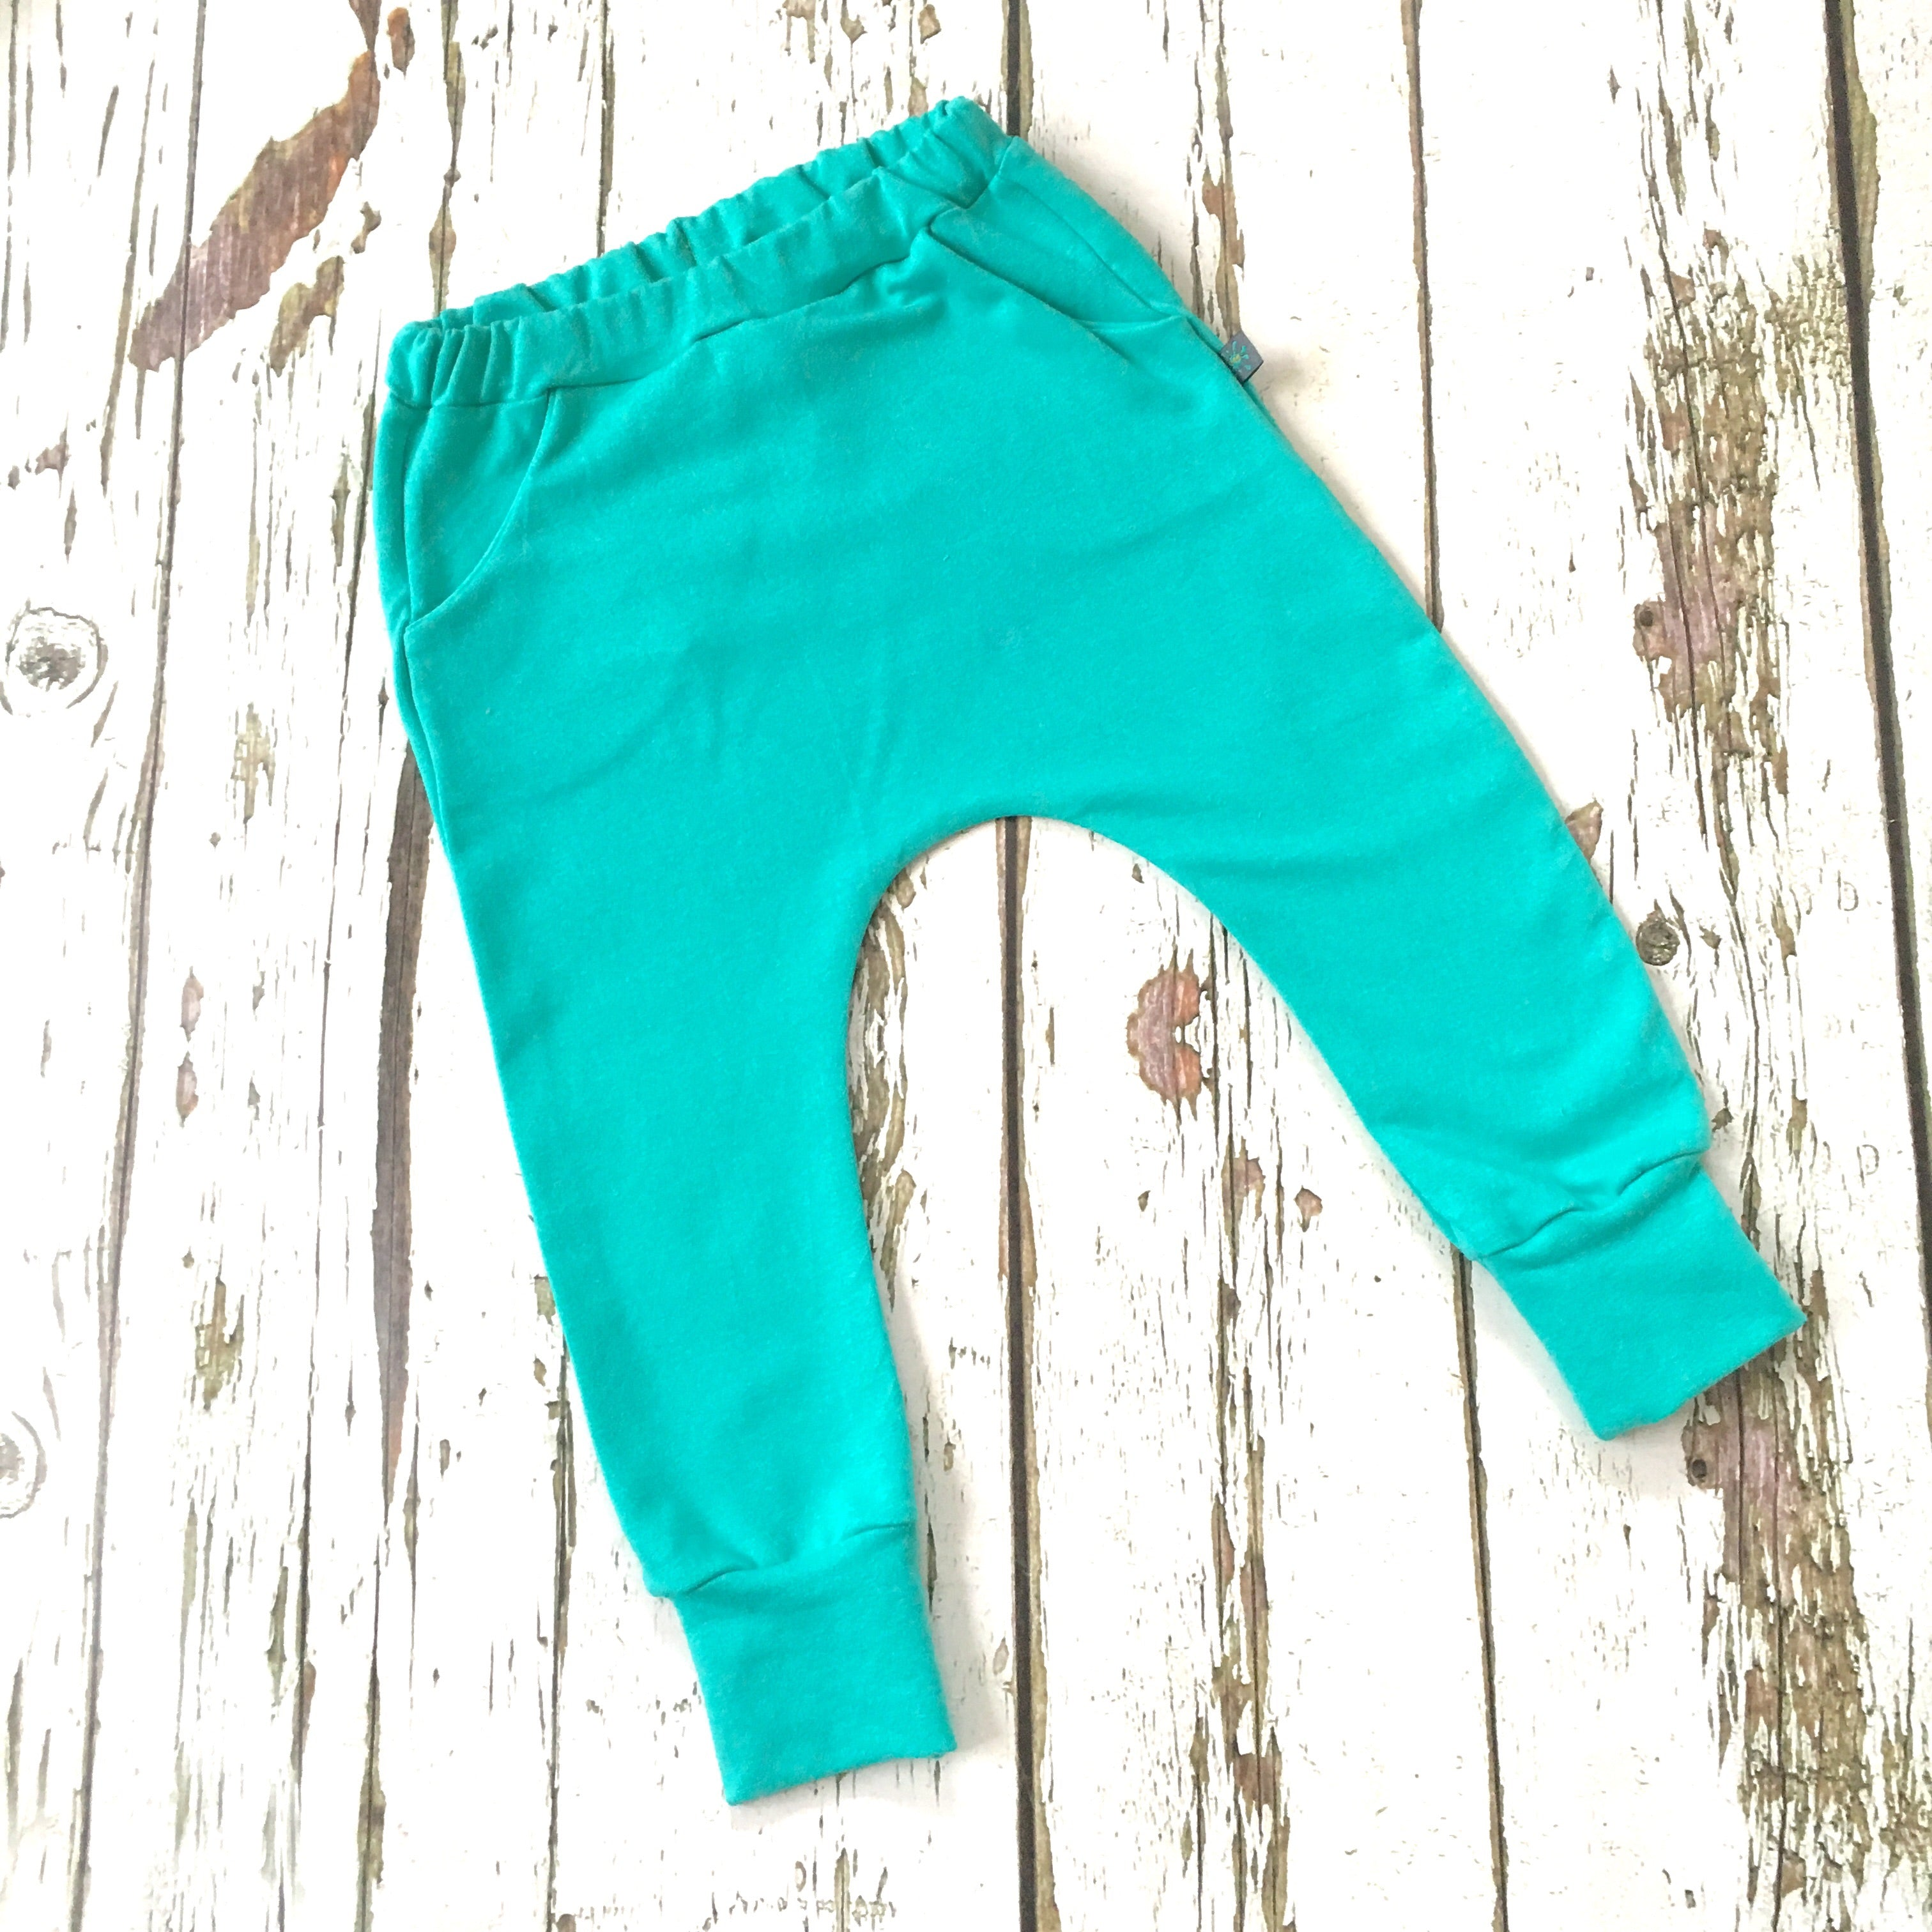 100% original meticulous dyeing processes on sale online NEW! Turquoise organic baby child harem sweatpants, baby sweatpants, joggers